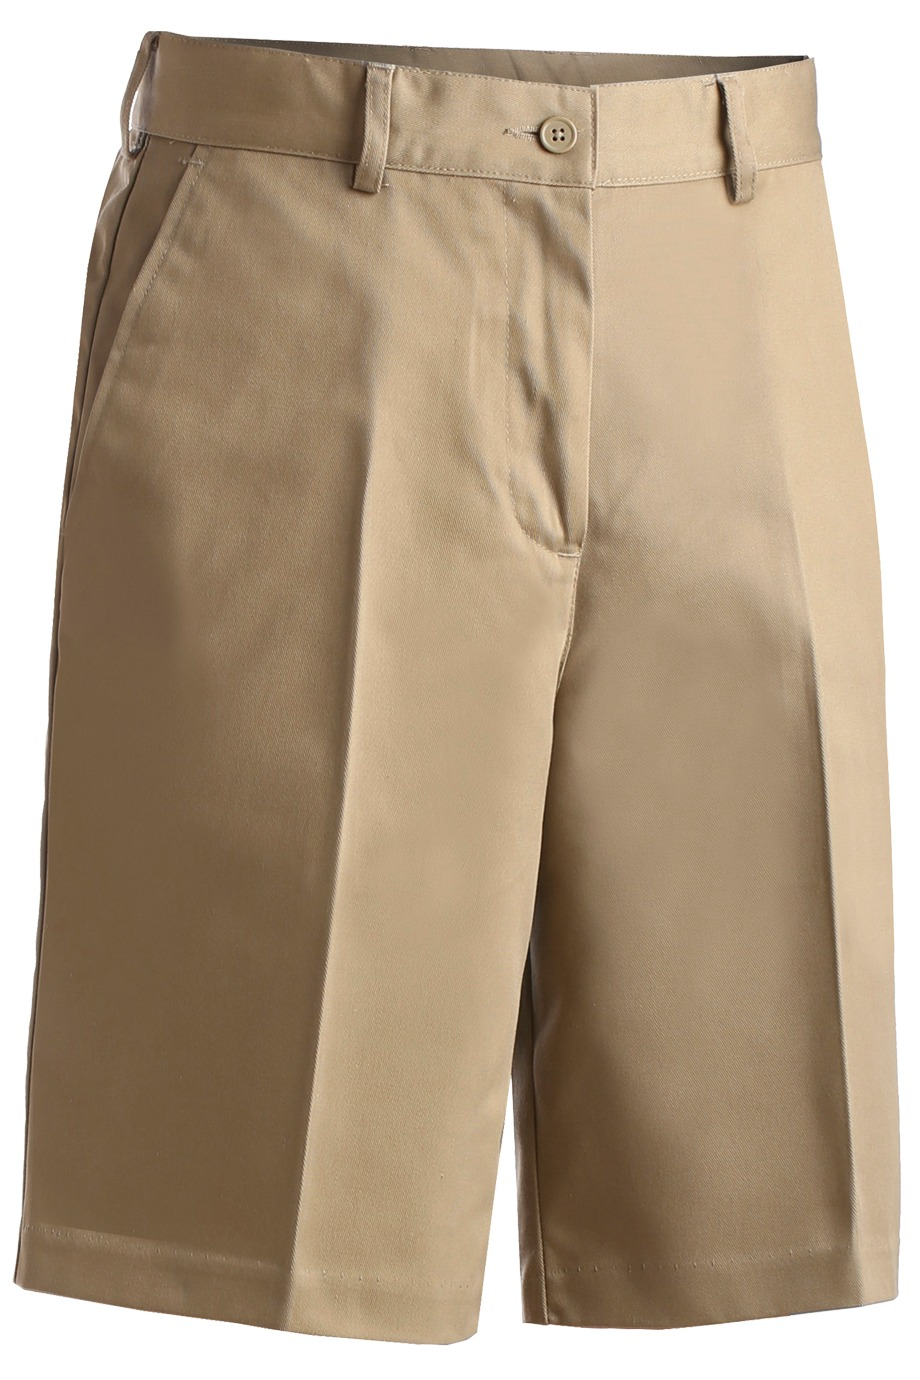 Ladies Utility Shorts: Flat Front or Pleated: SharperUniforms.com